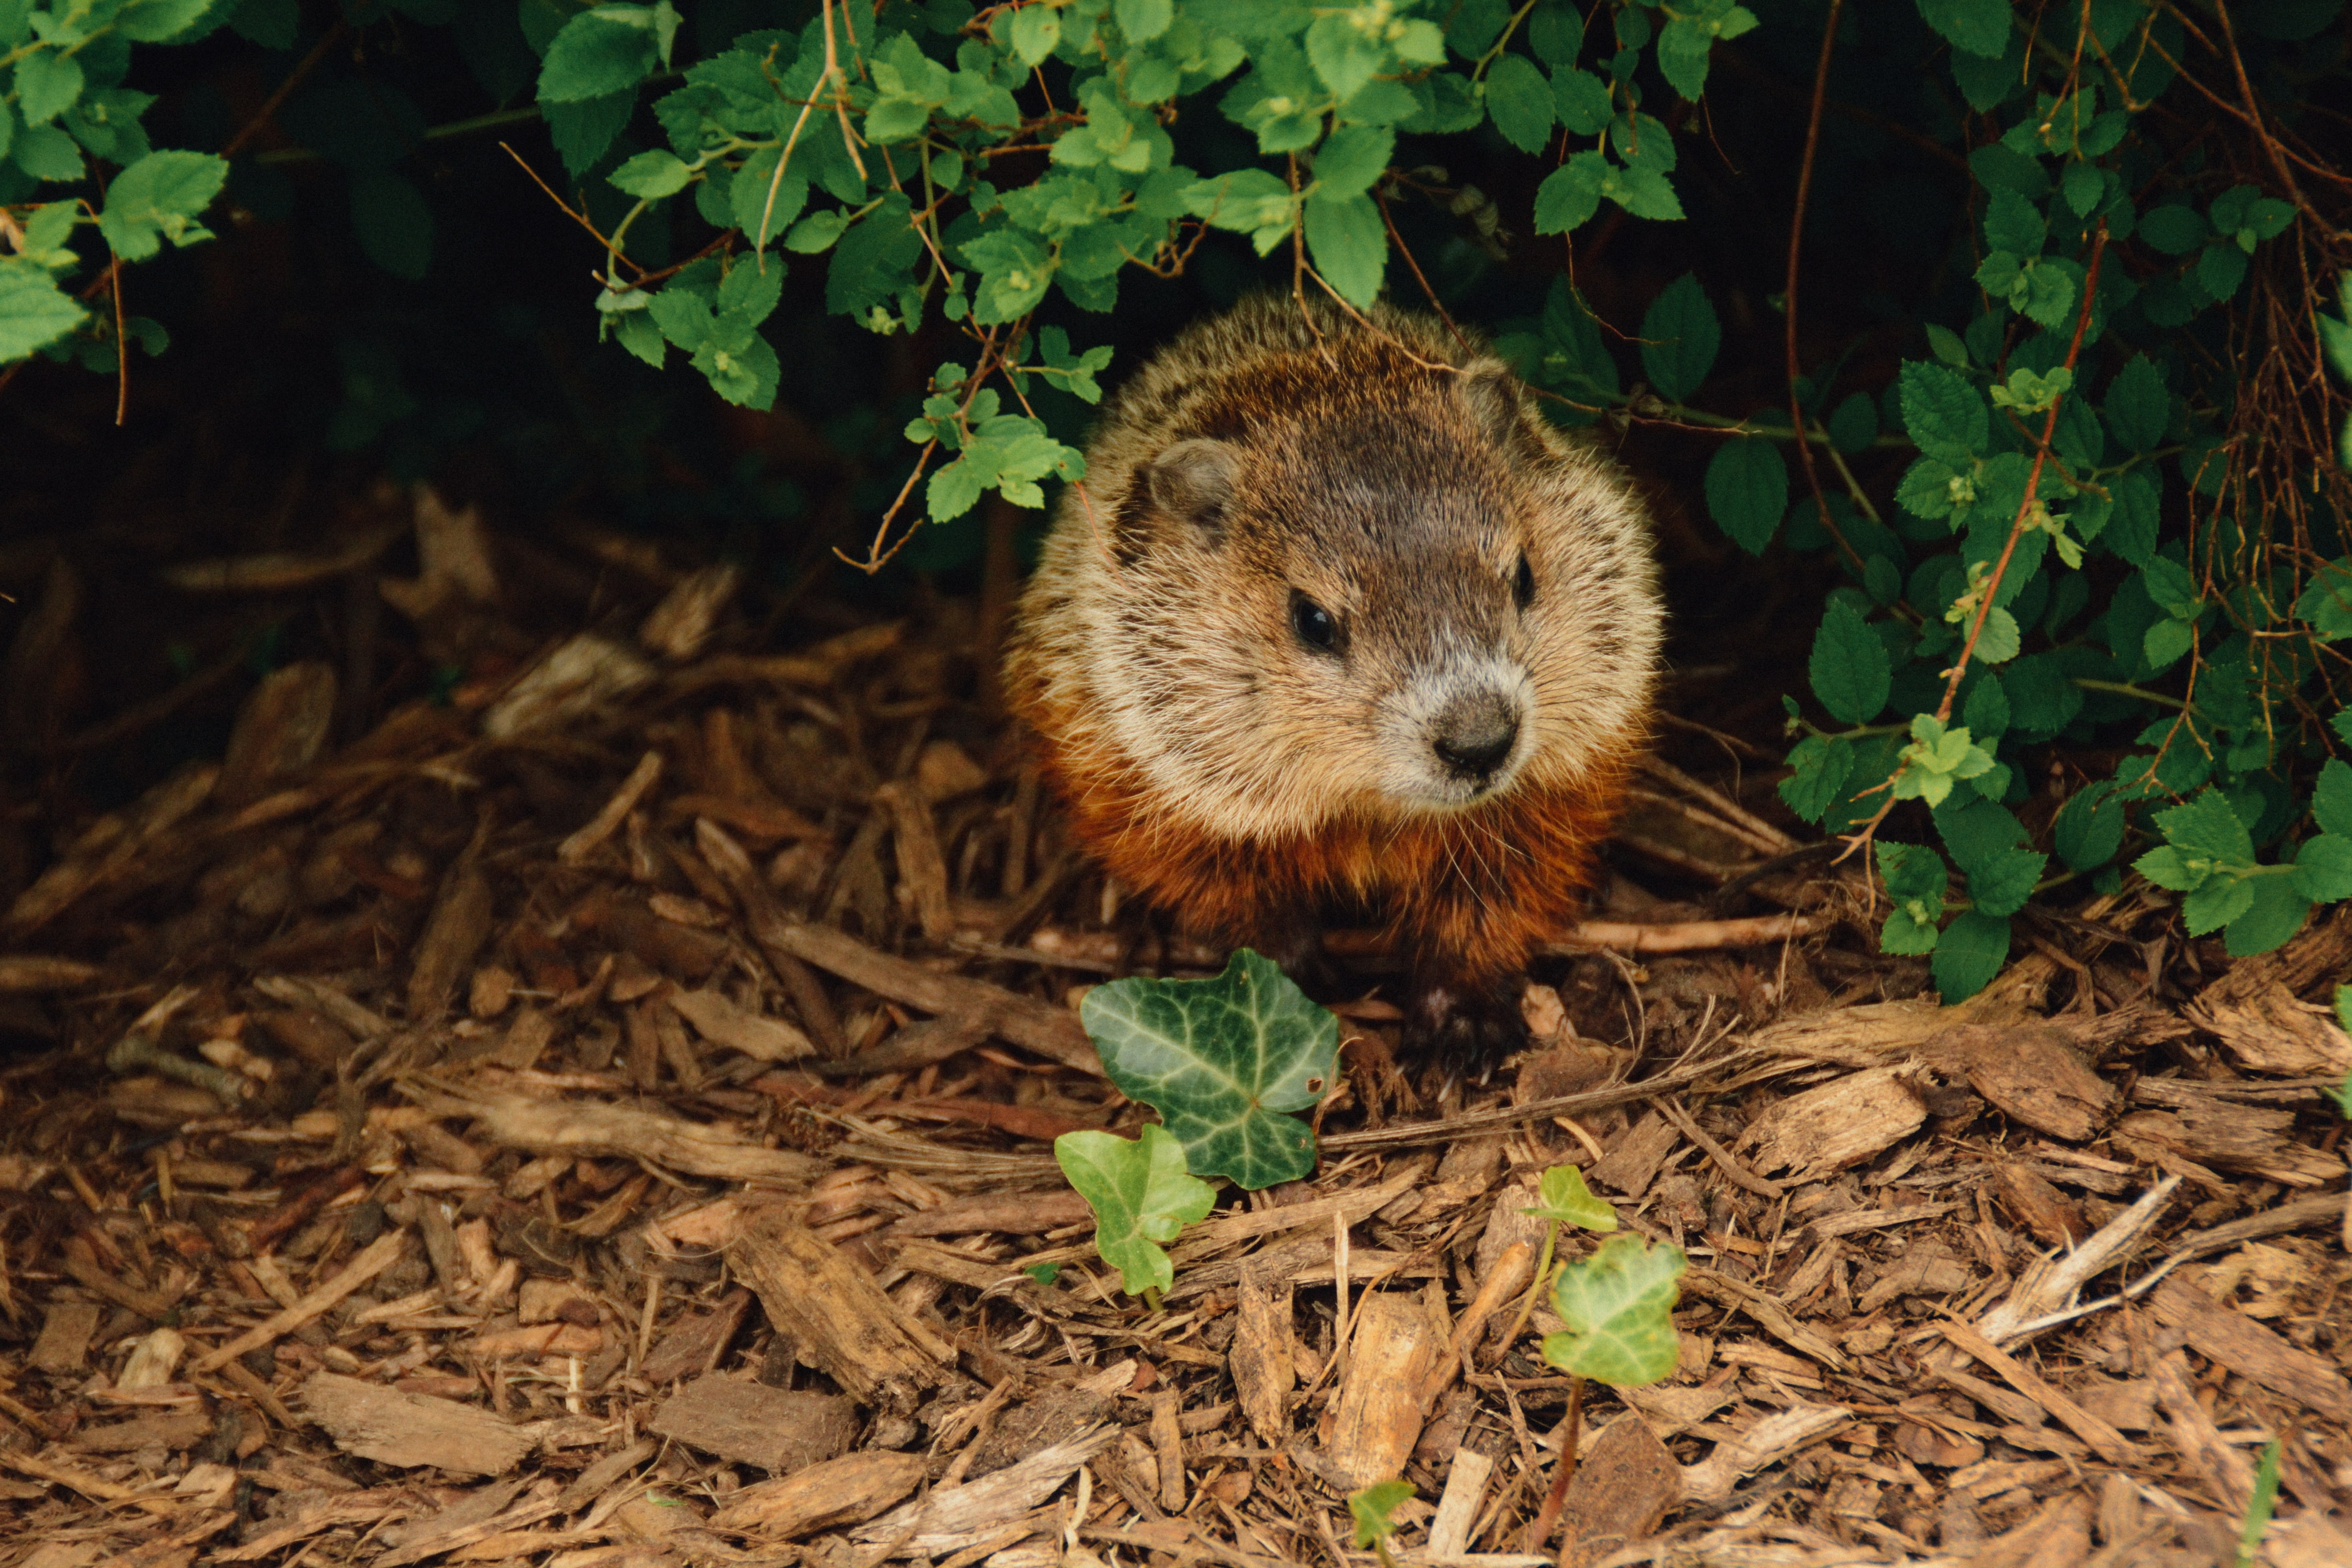 Groundhog walking on wood chips out of a green bush.